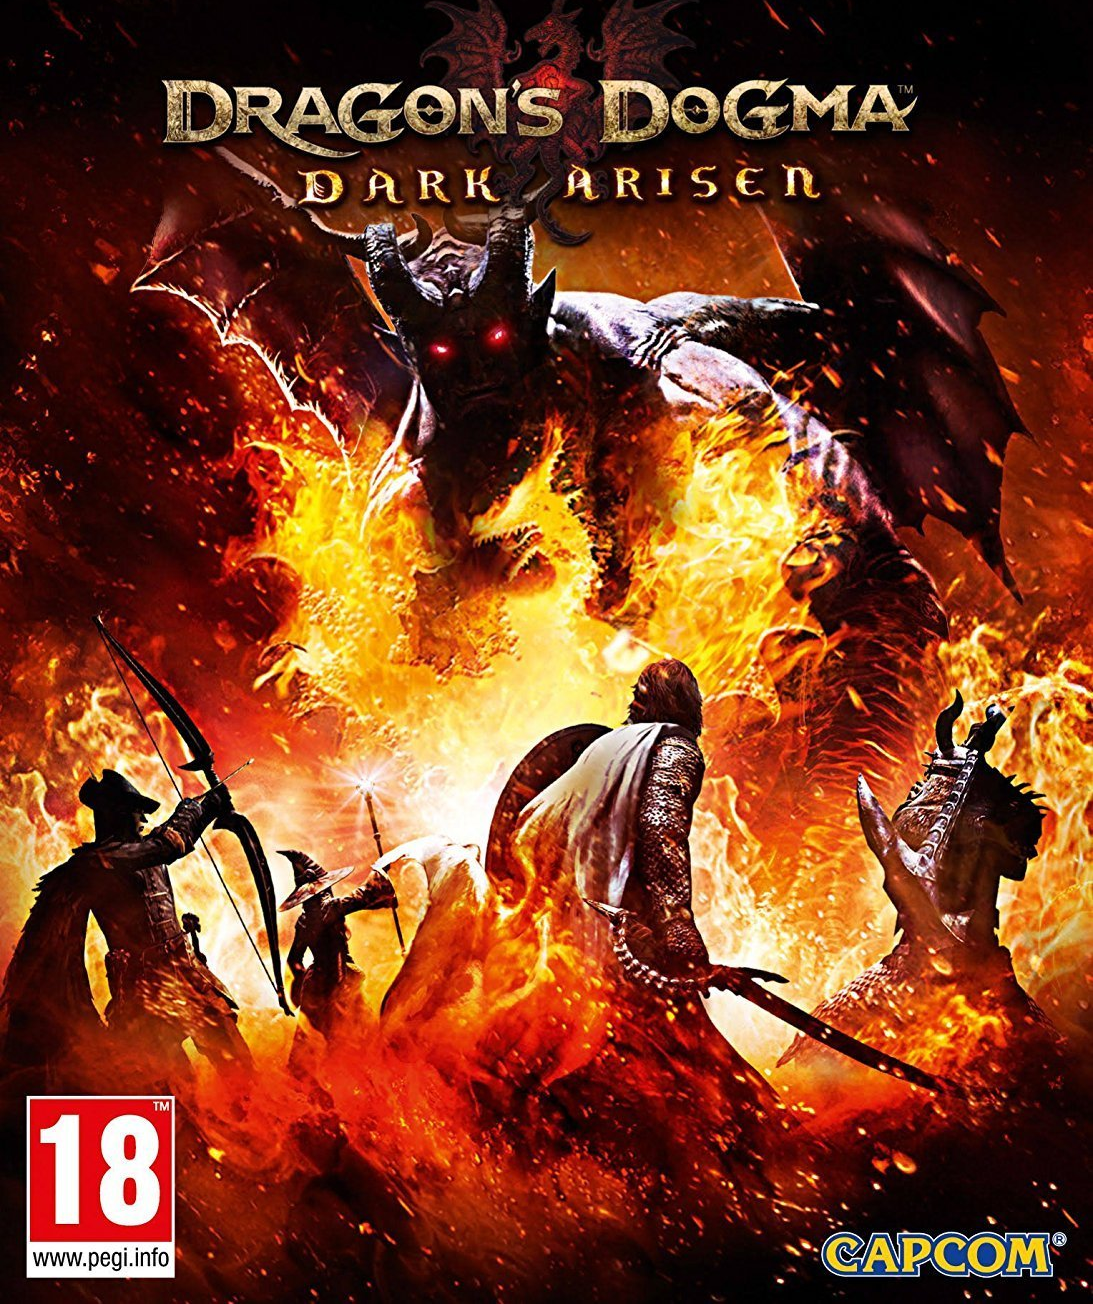 Dragon's Dogma: Dark Arisen [1.0.0.18 (12573)] (2016) (2016)